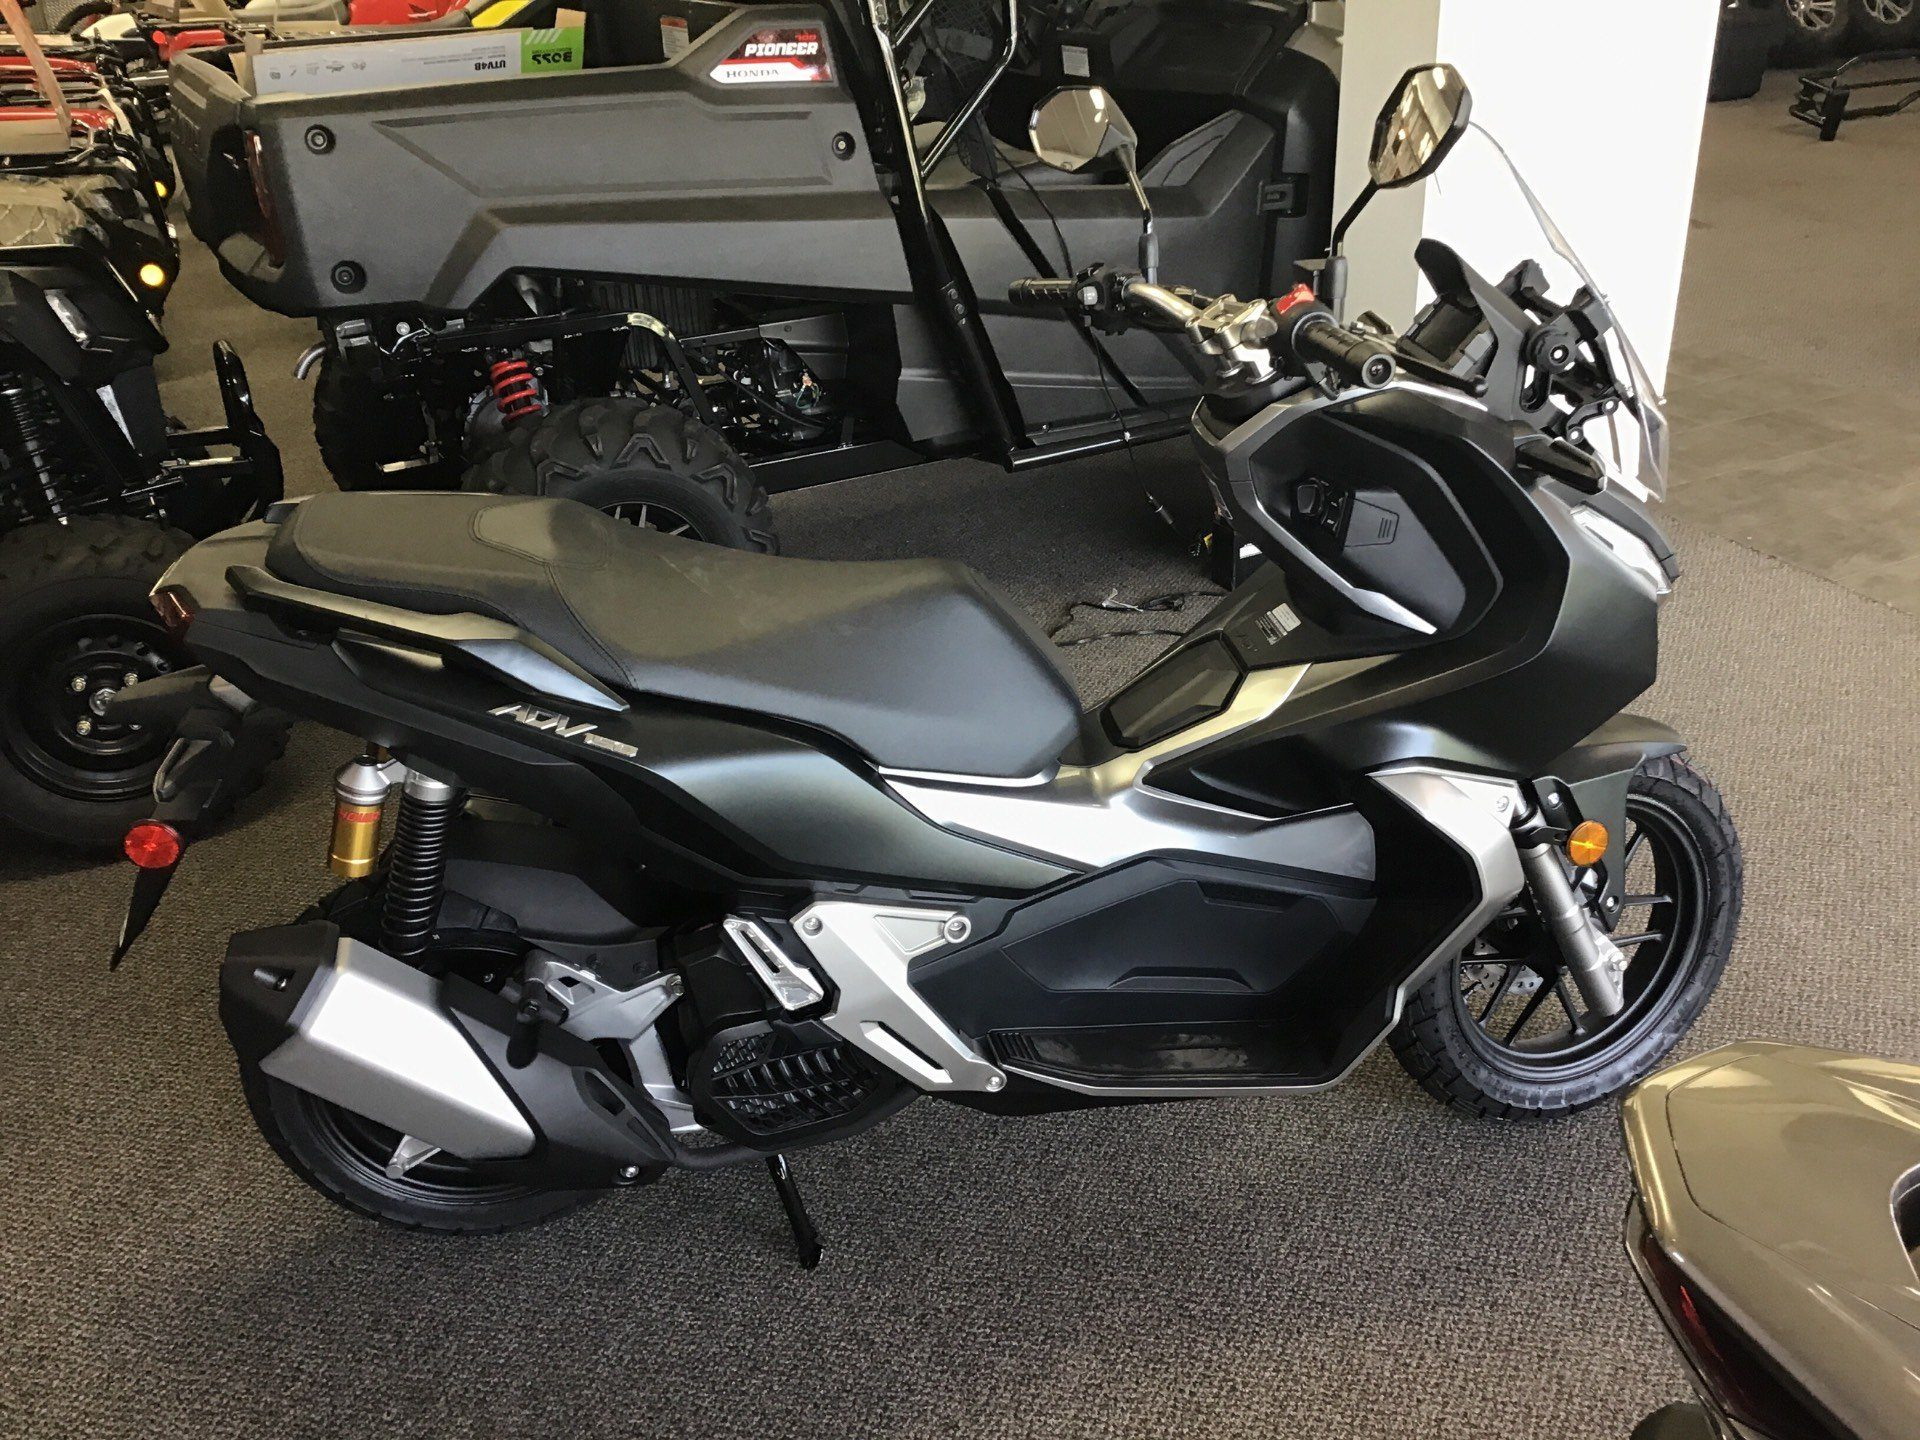 2020 Honda ADV 150 in Sterling, Illinois - Photo 4